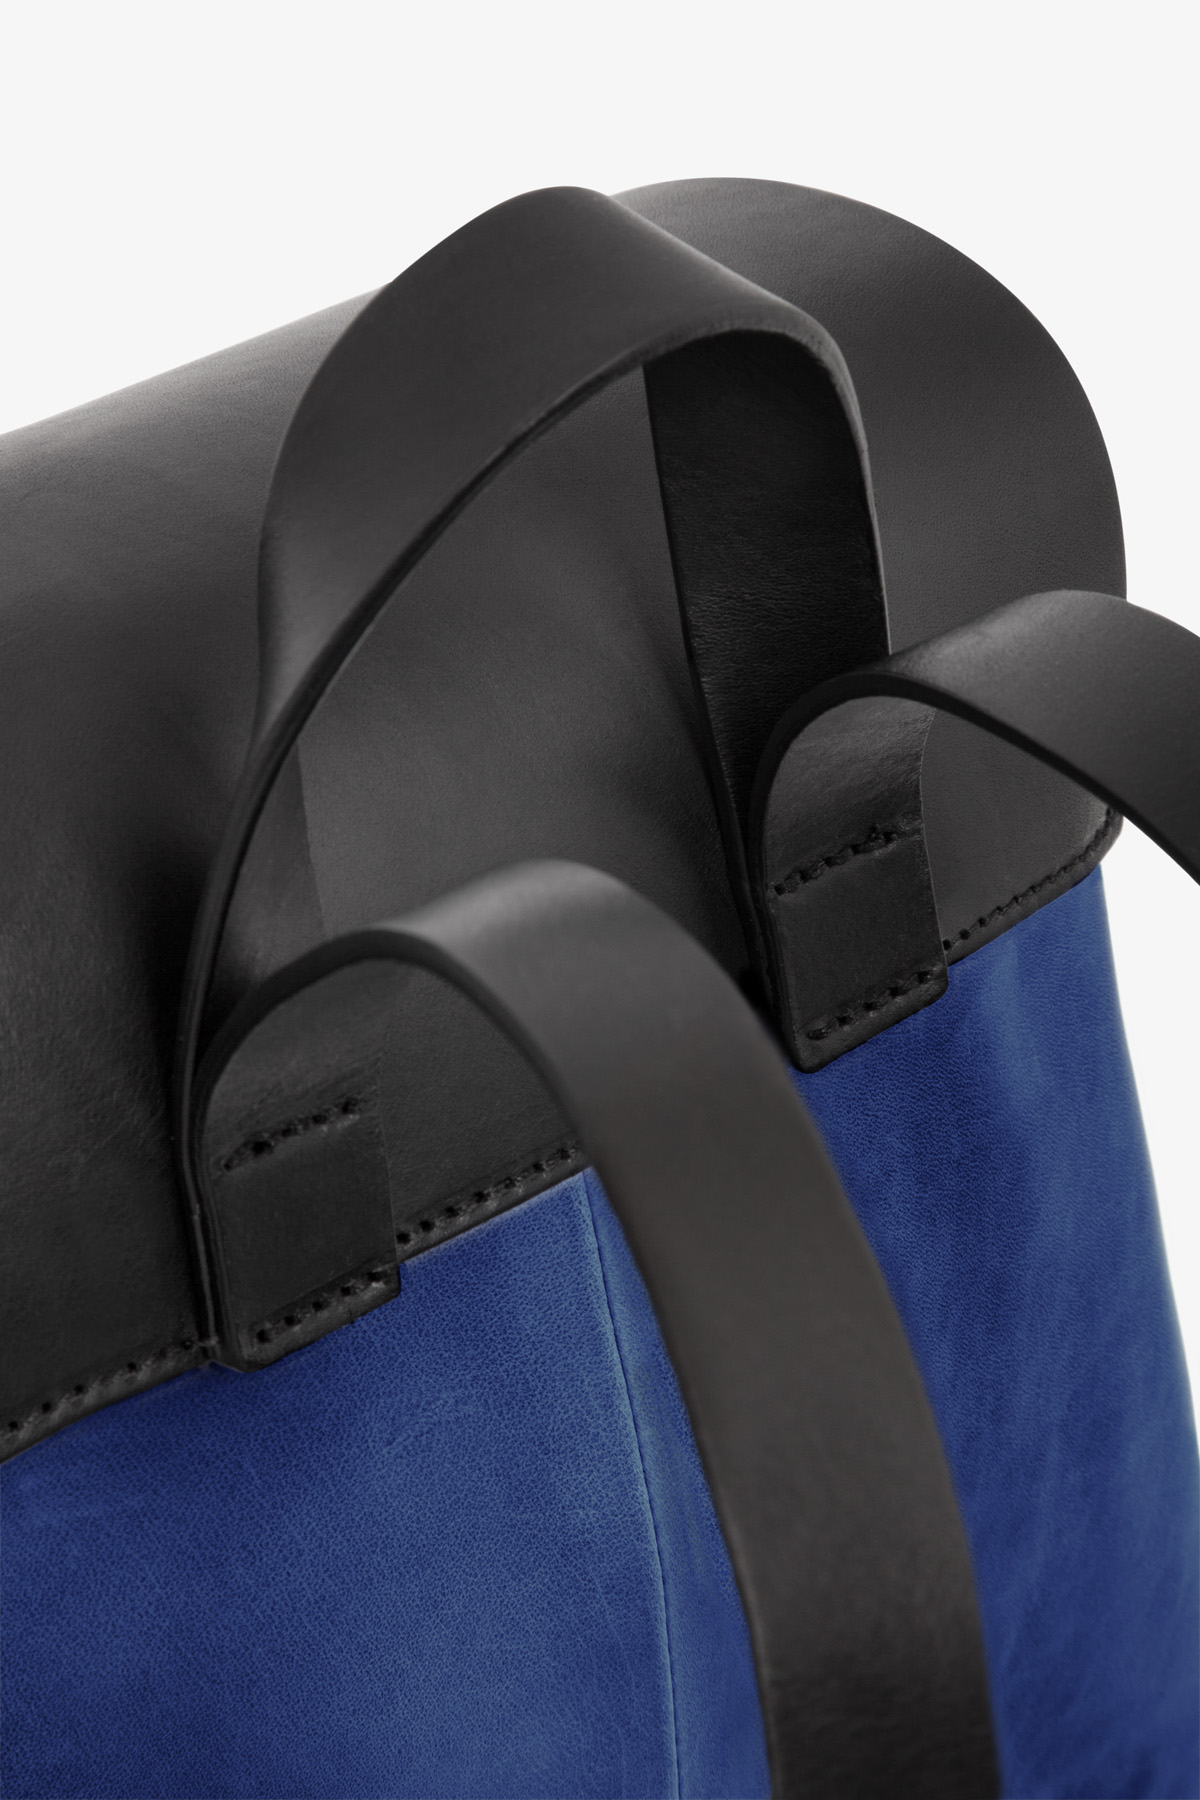 dclr009-b-backpack-a20-royalblue-detail